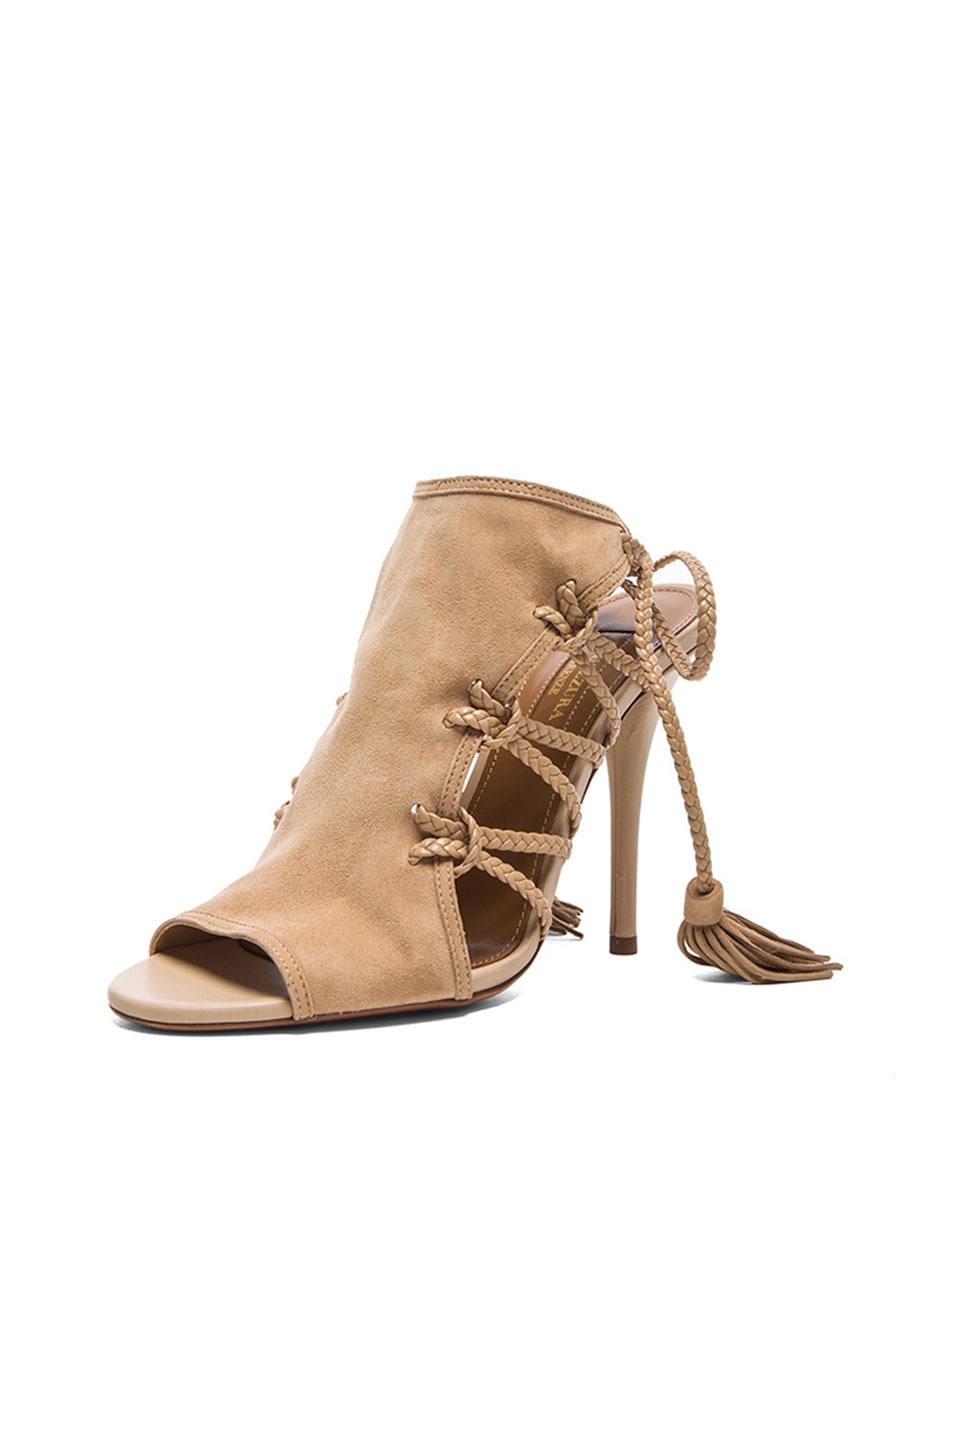 Image 2 of Aquazzura Sahara Suede Heels in Nude